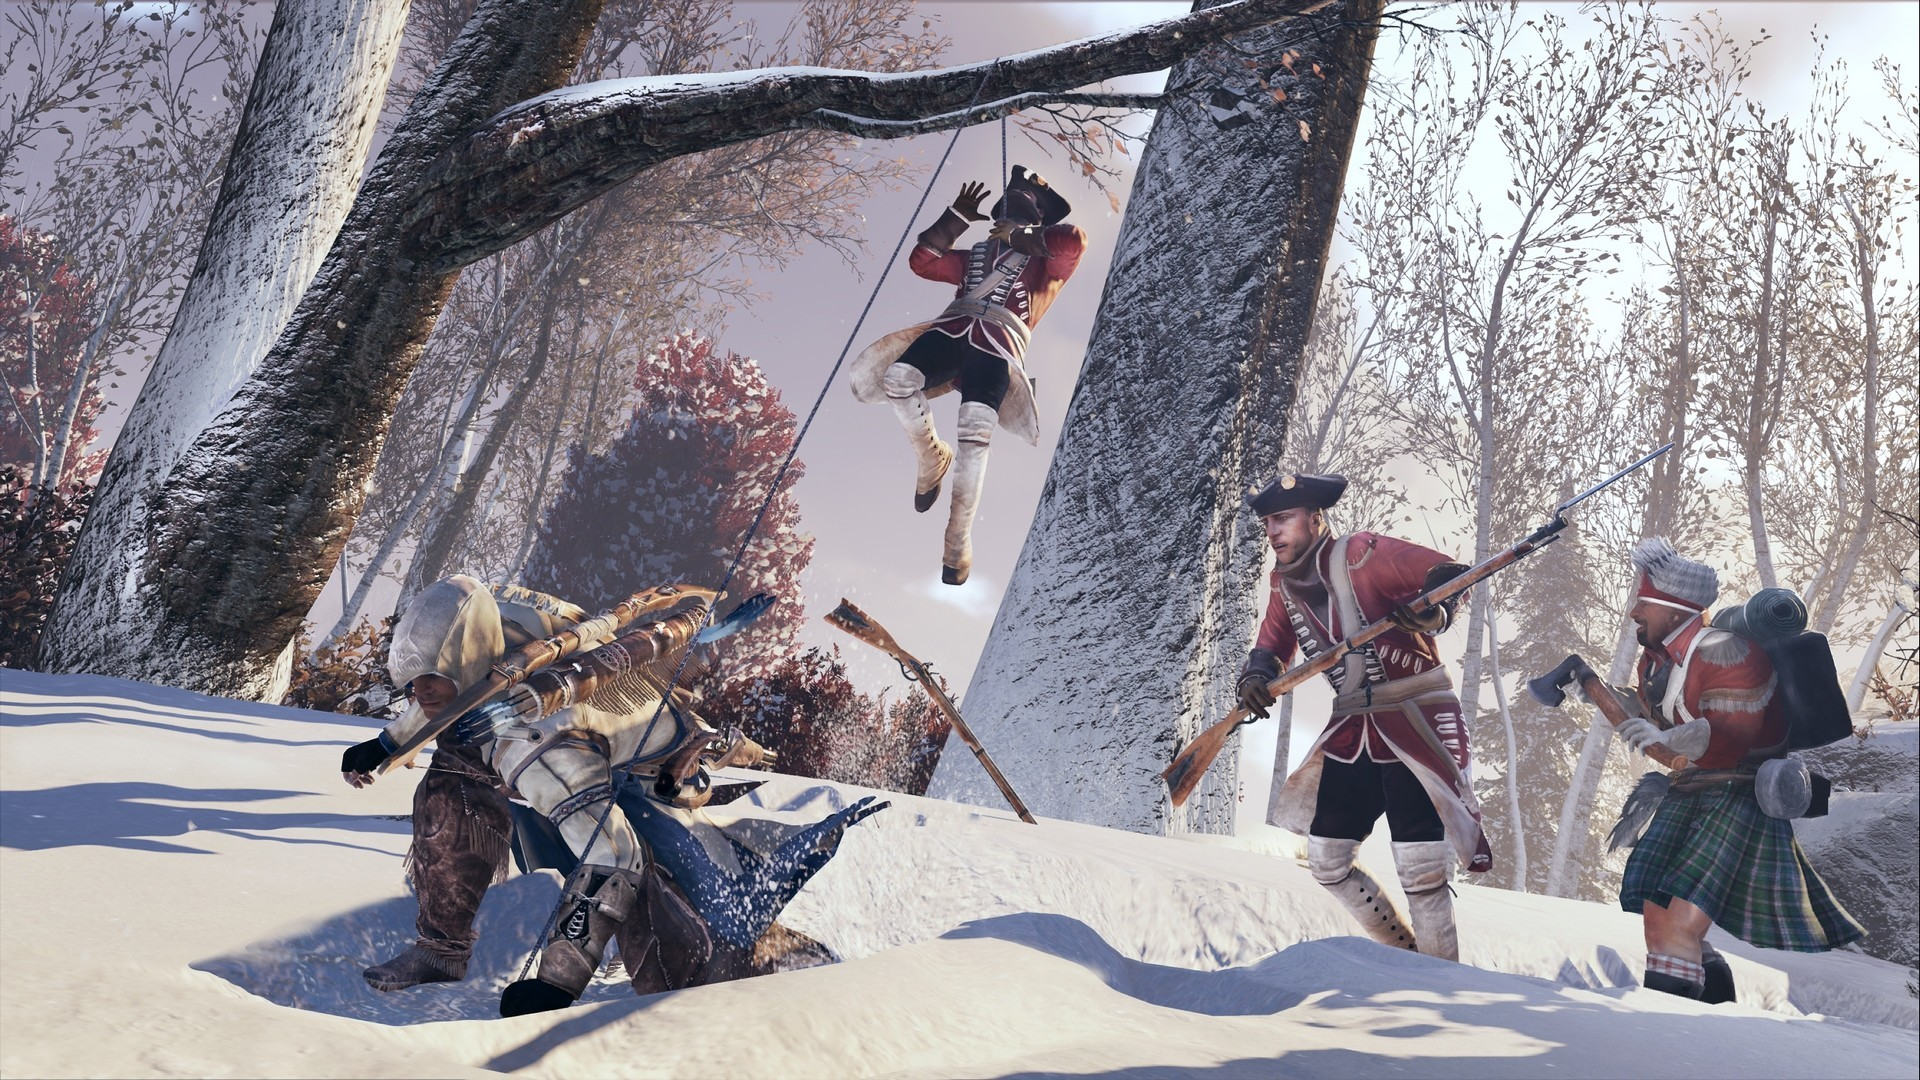 Скриншот *Assassin's Creed 3: Remastered [PS4] 6.72 / 7.02 [EUR] (2019) [Русский] (v1.03)*